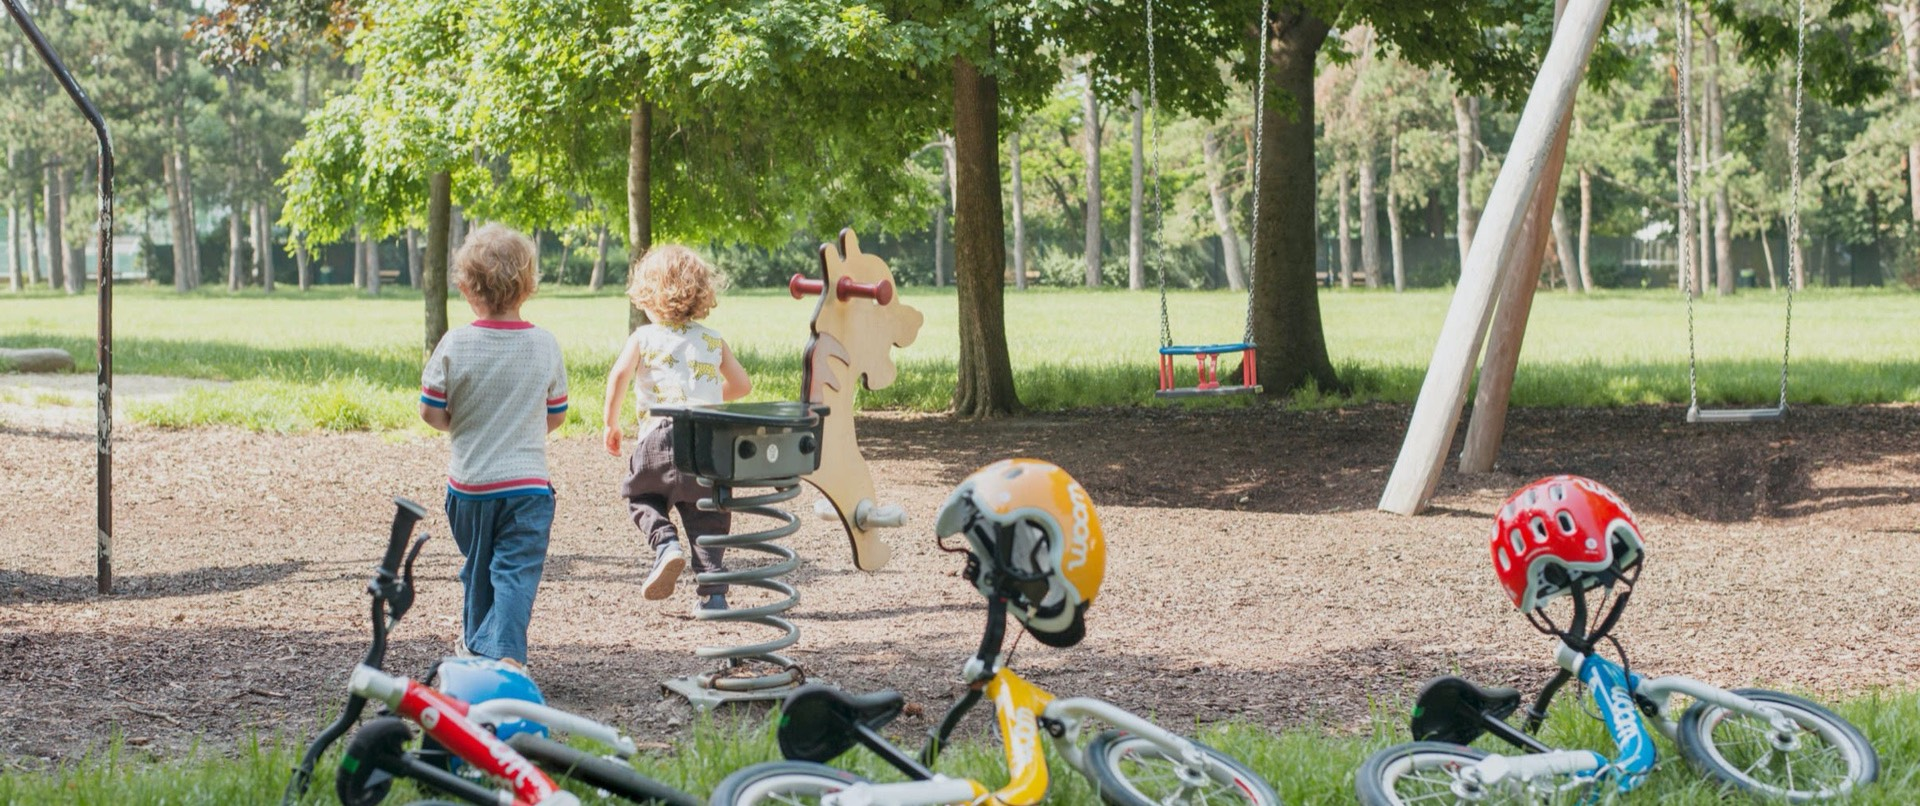 kids riding woom bikes and playing in the park